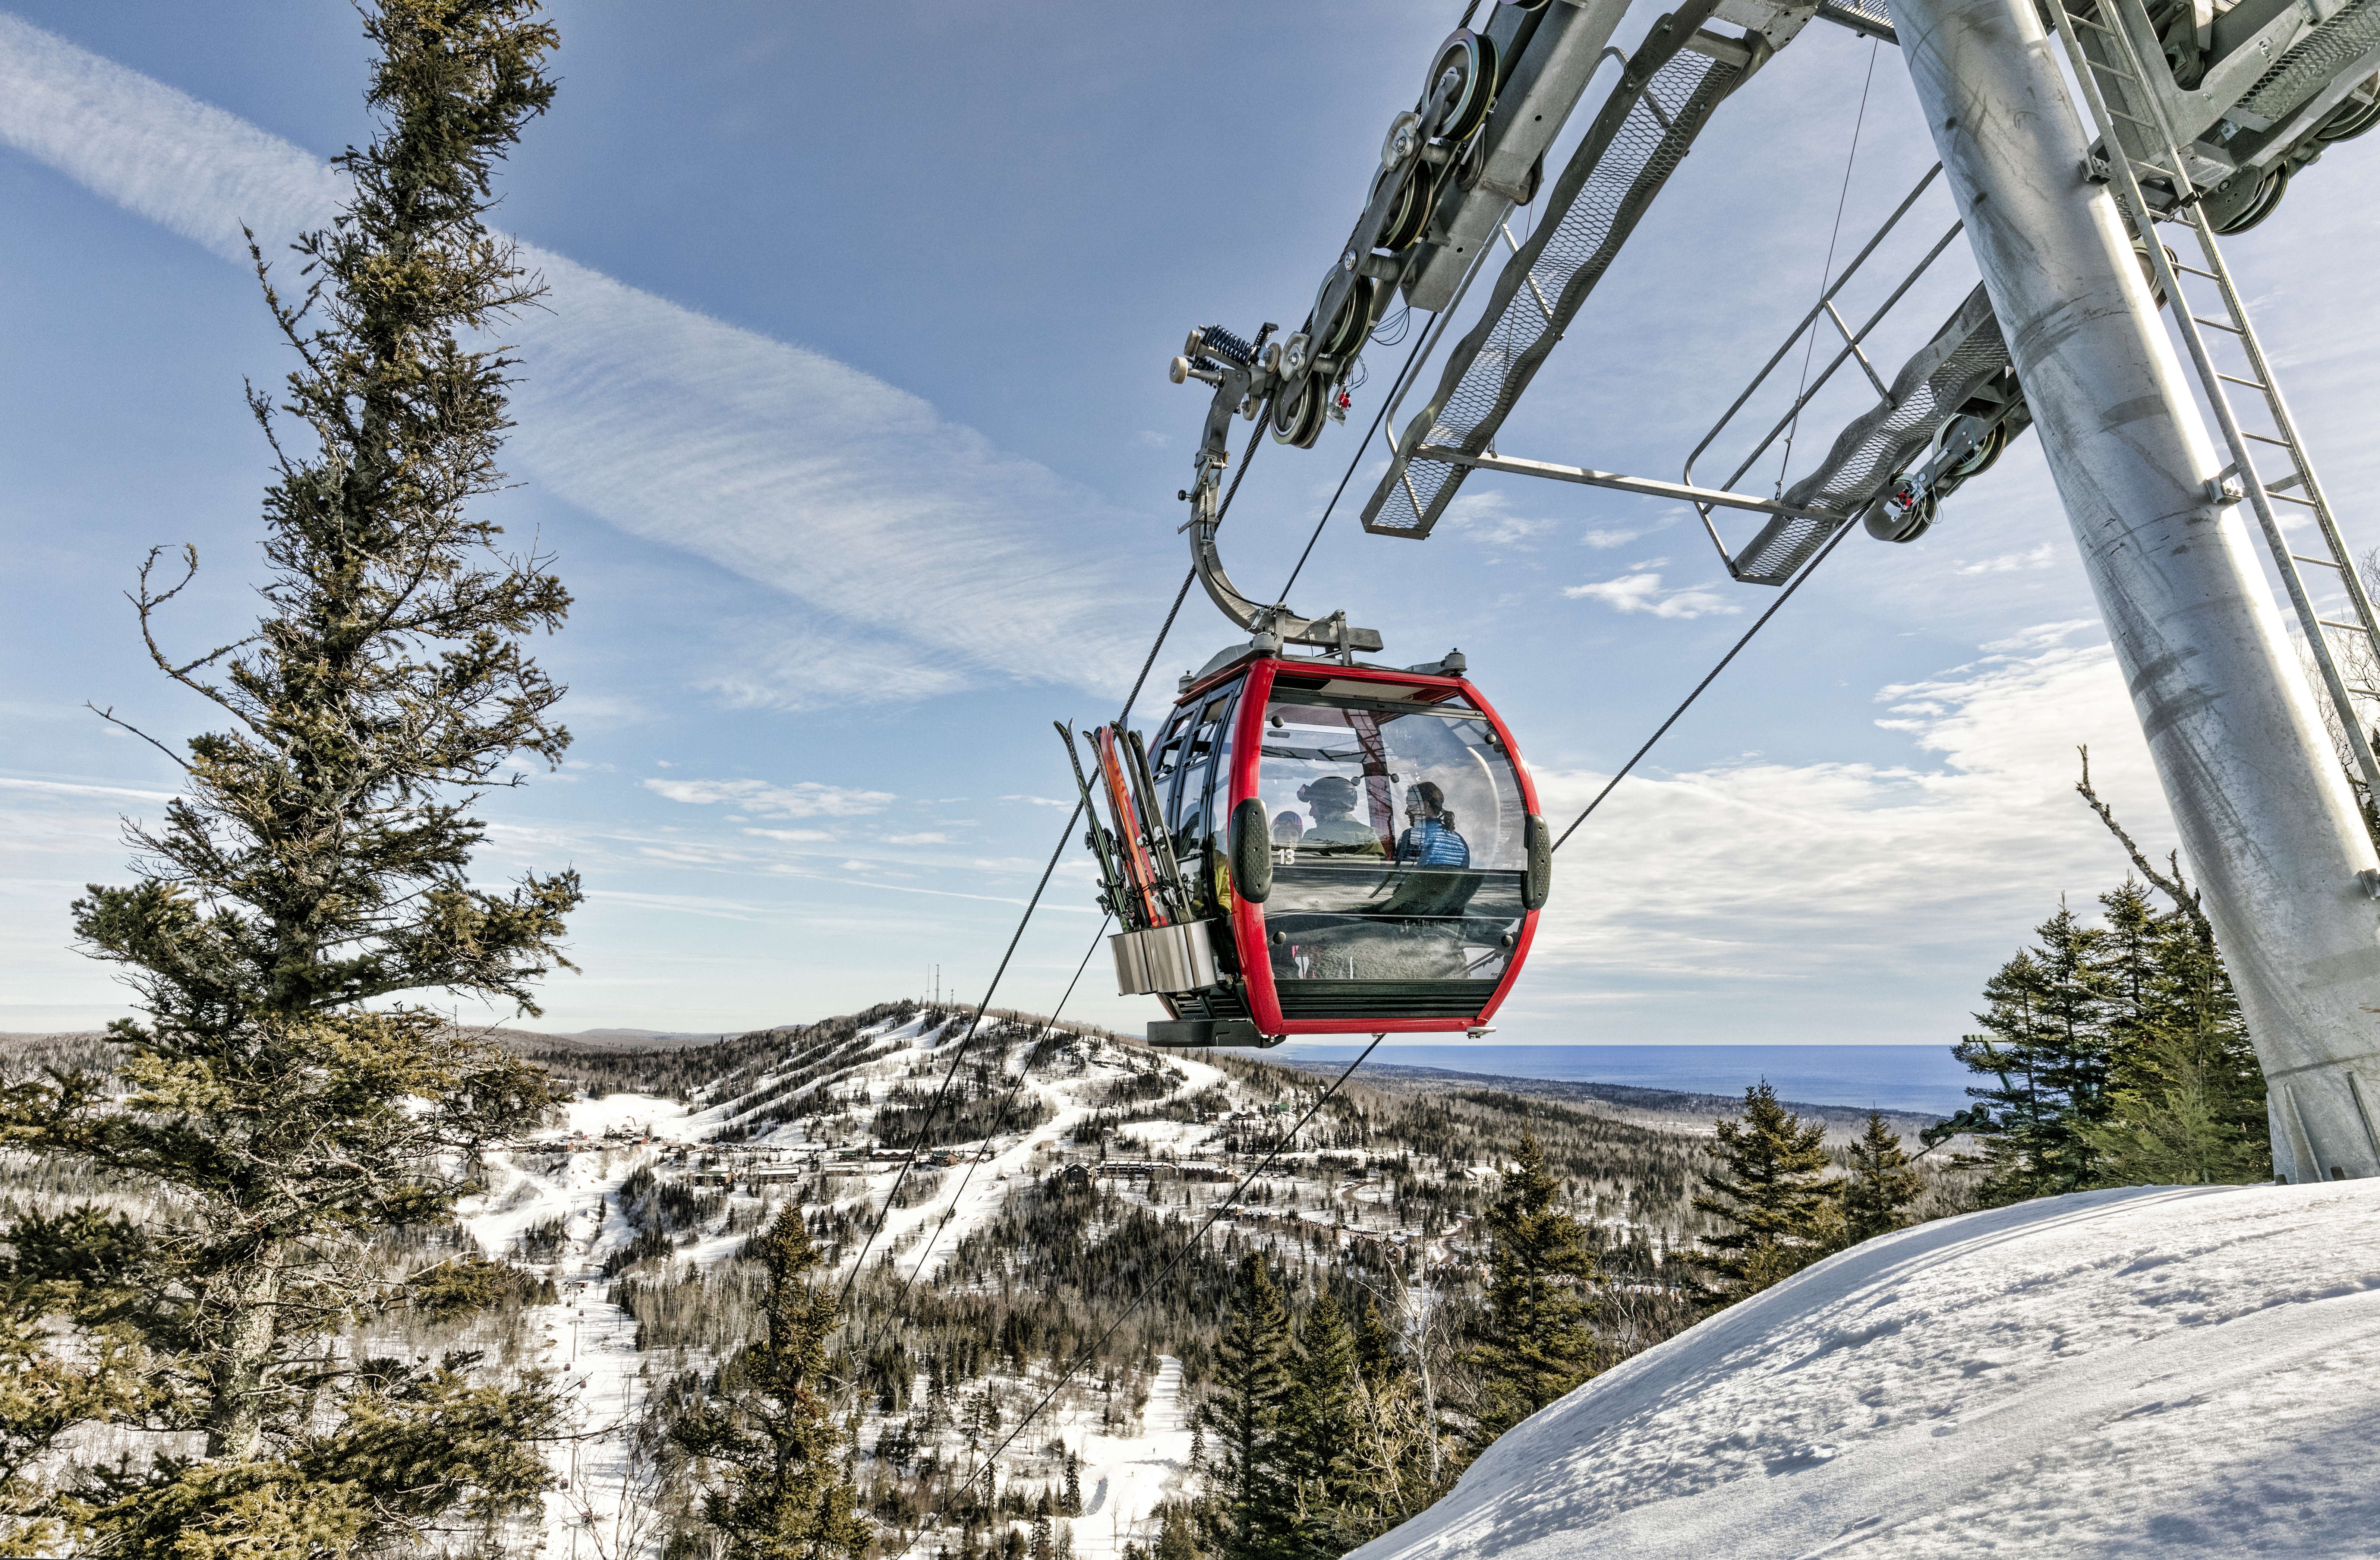 Summit Express Gondola - Skiing in Minnesota